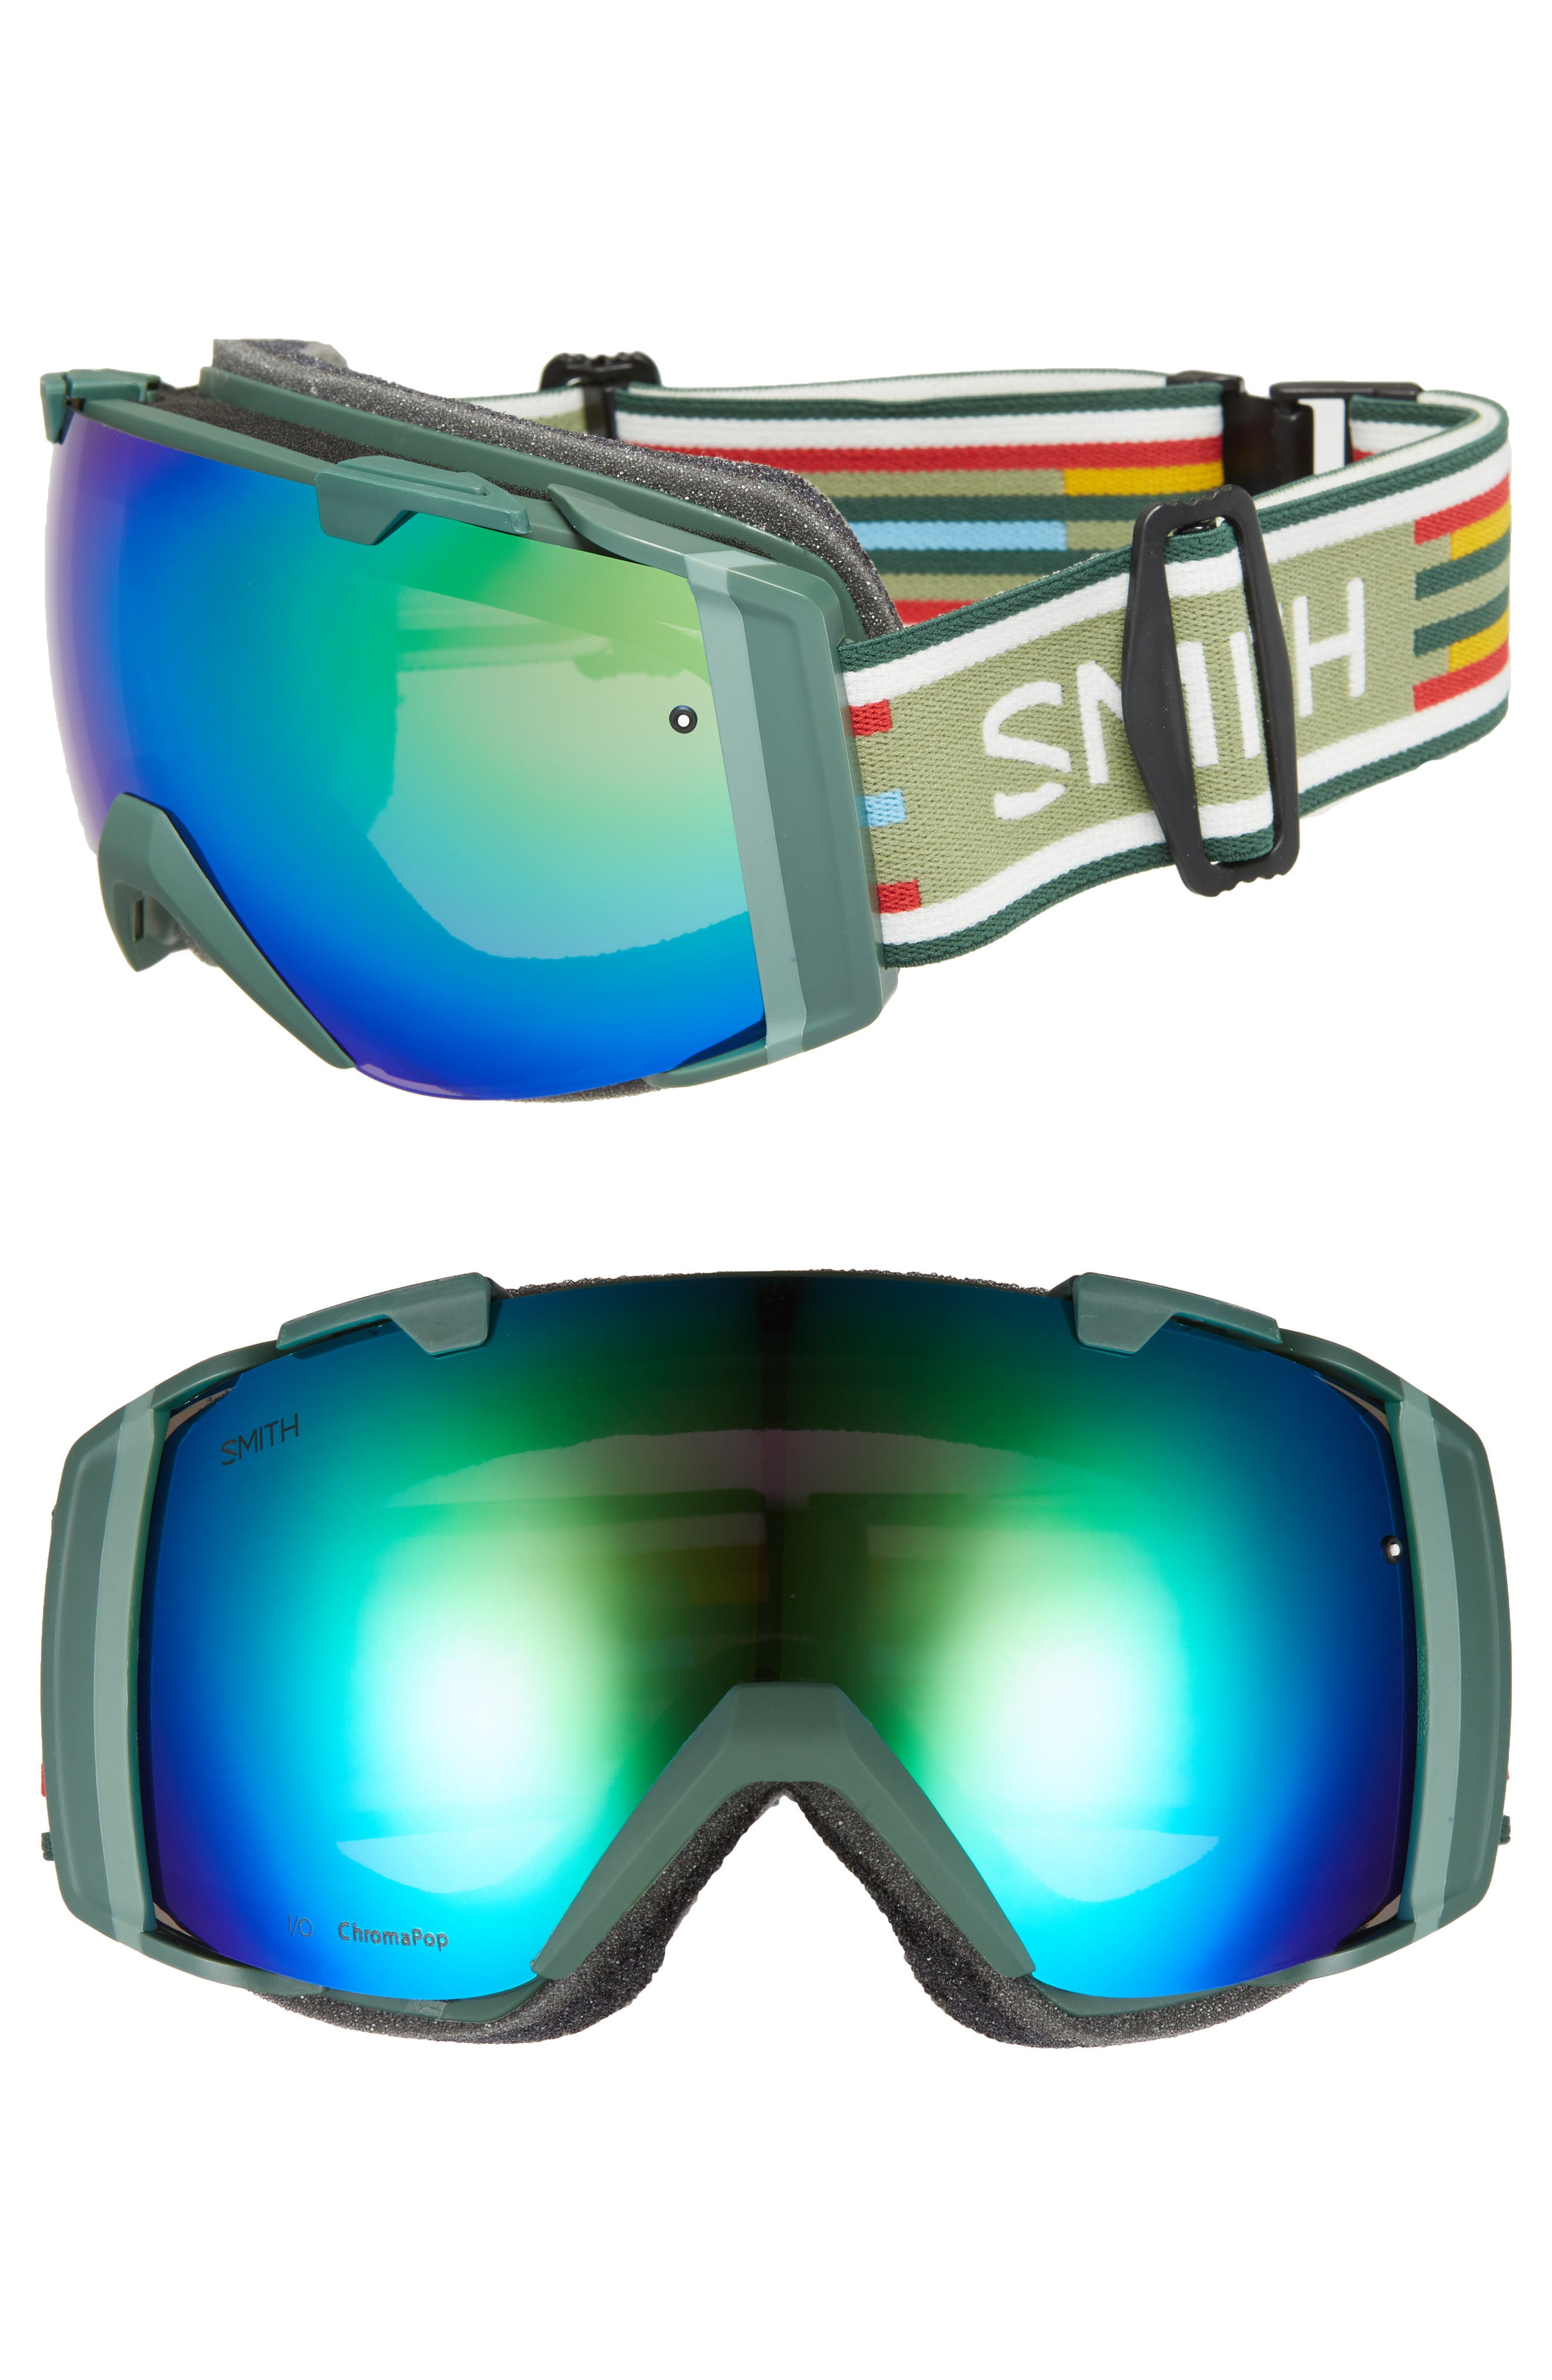 Alternate Image 1 Selected - Smith I/O 205mm Snow Goggles